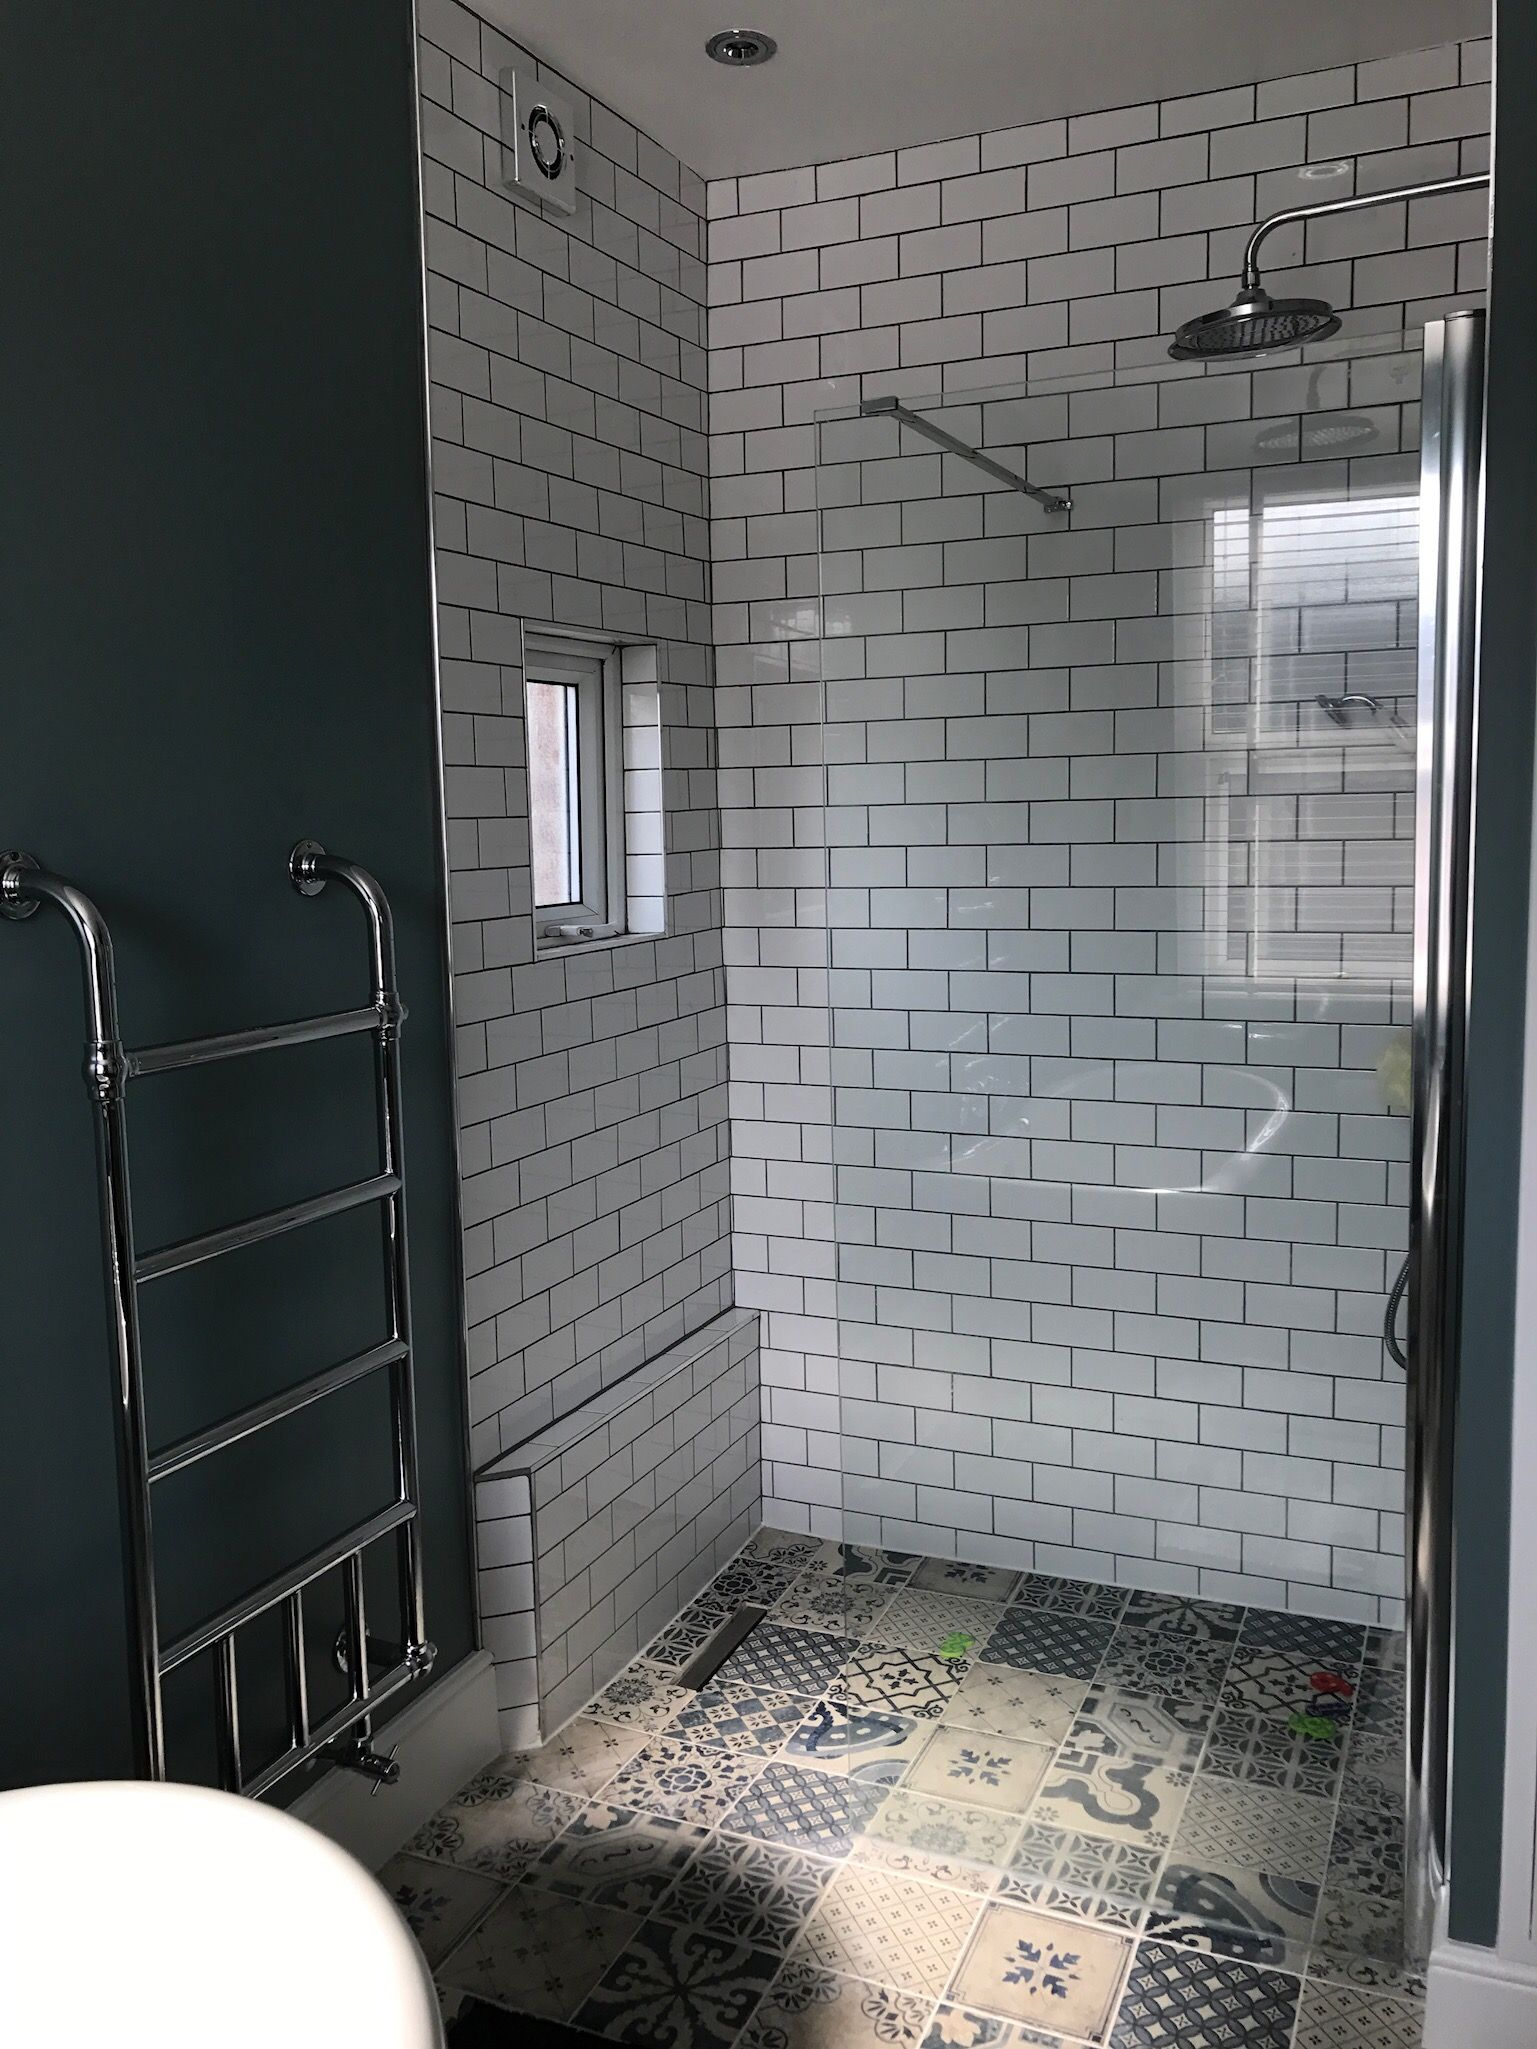 Bathroom. White brick tiles, grey grouting, oval room blue